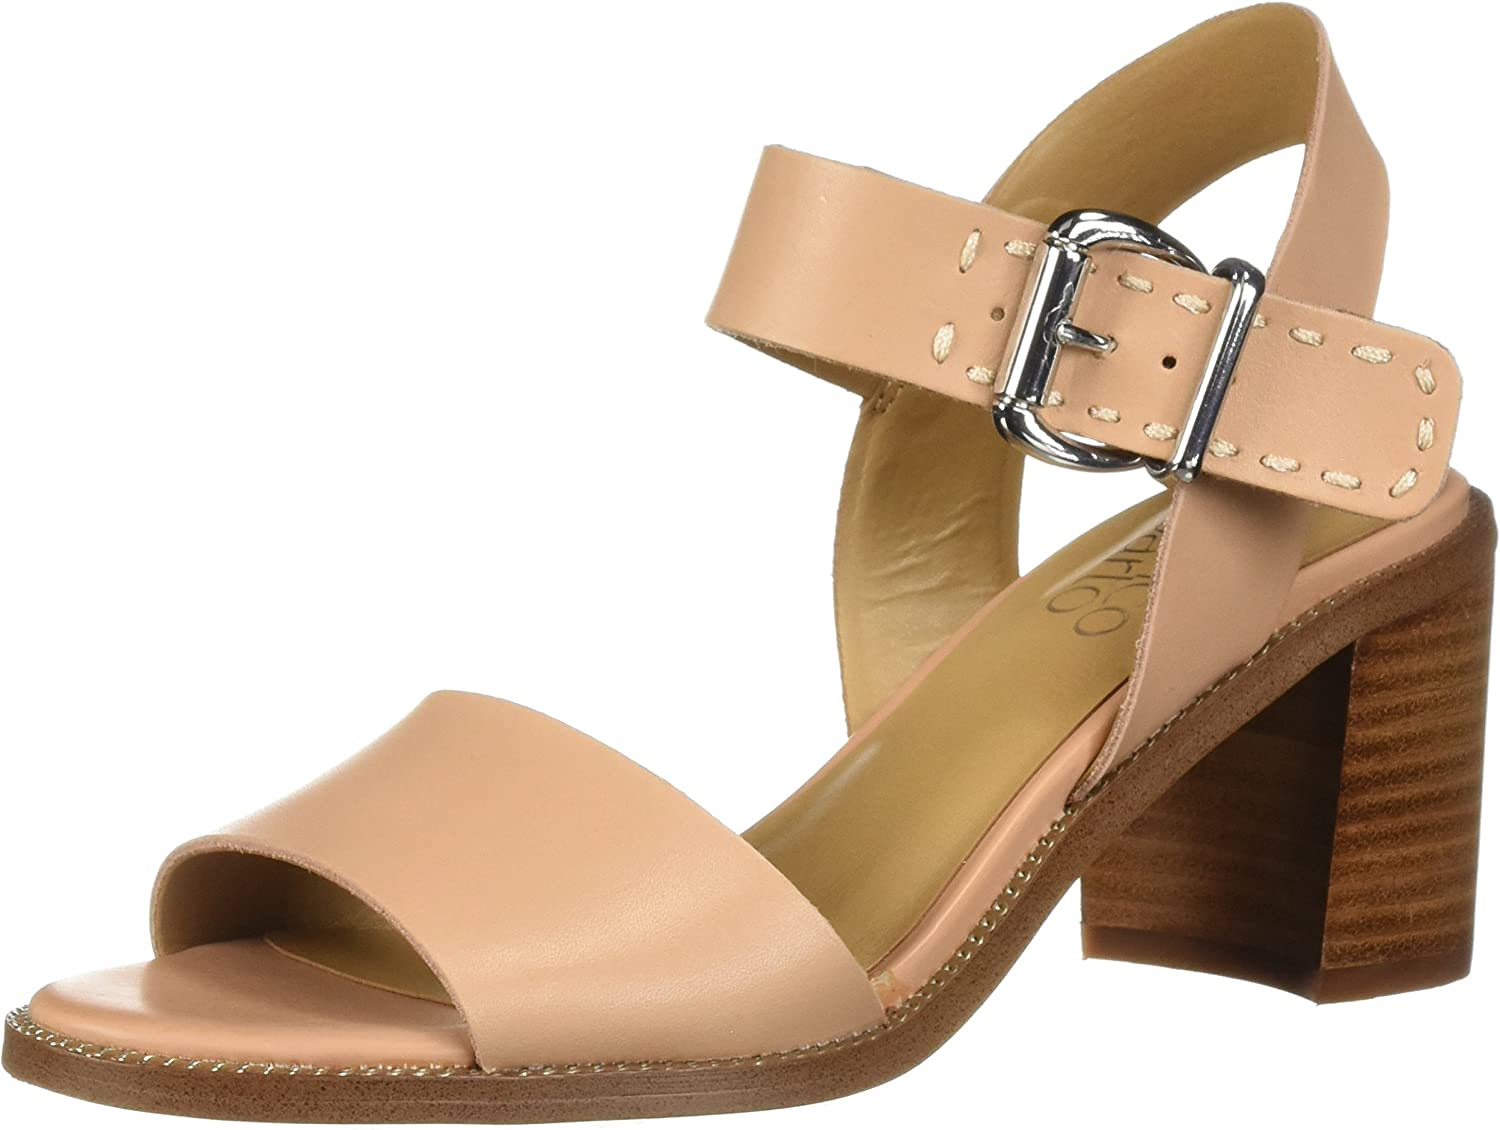 Franco Sarto Damen Havana Sandalen mit Absatz, Milk Leather